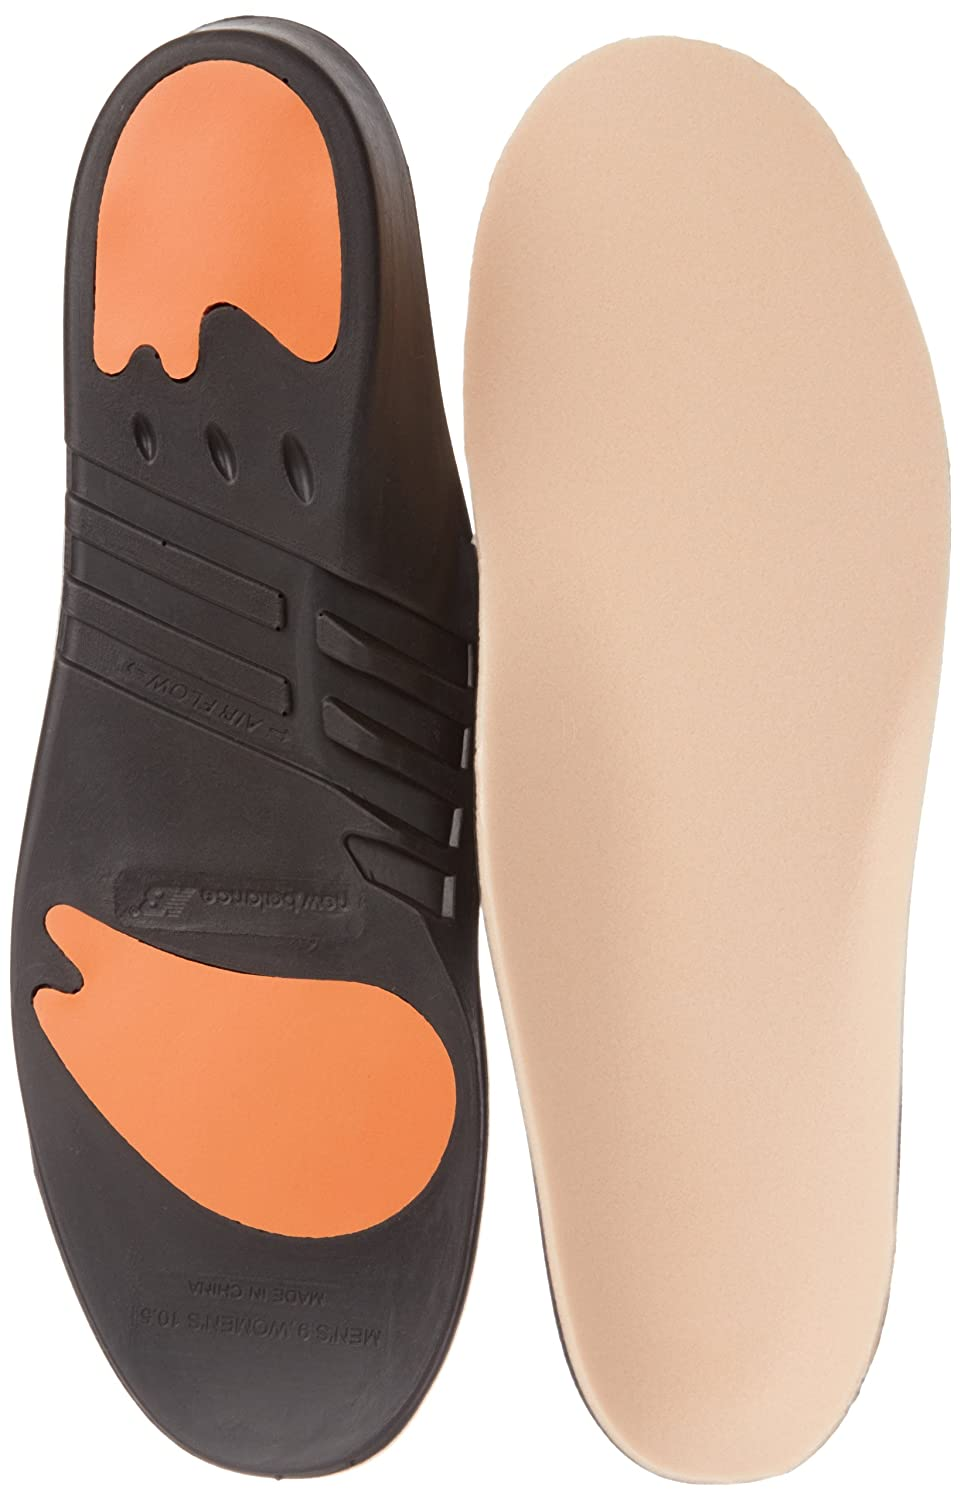 Amazon Com New Balance Ipr3020 Pressure Relief Insole Shoes